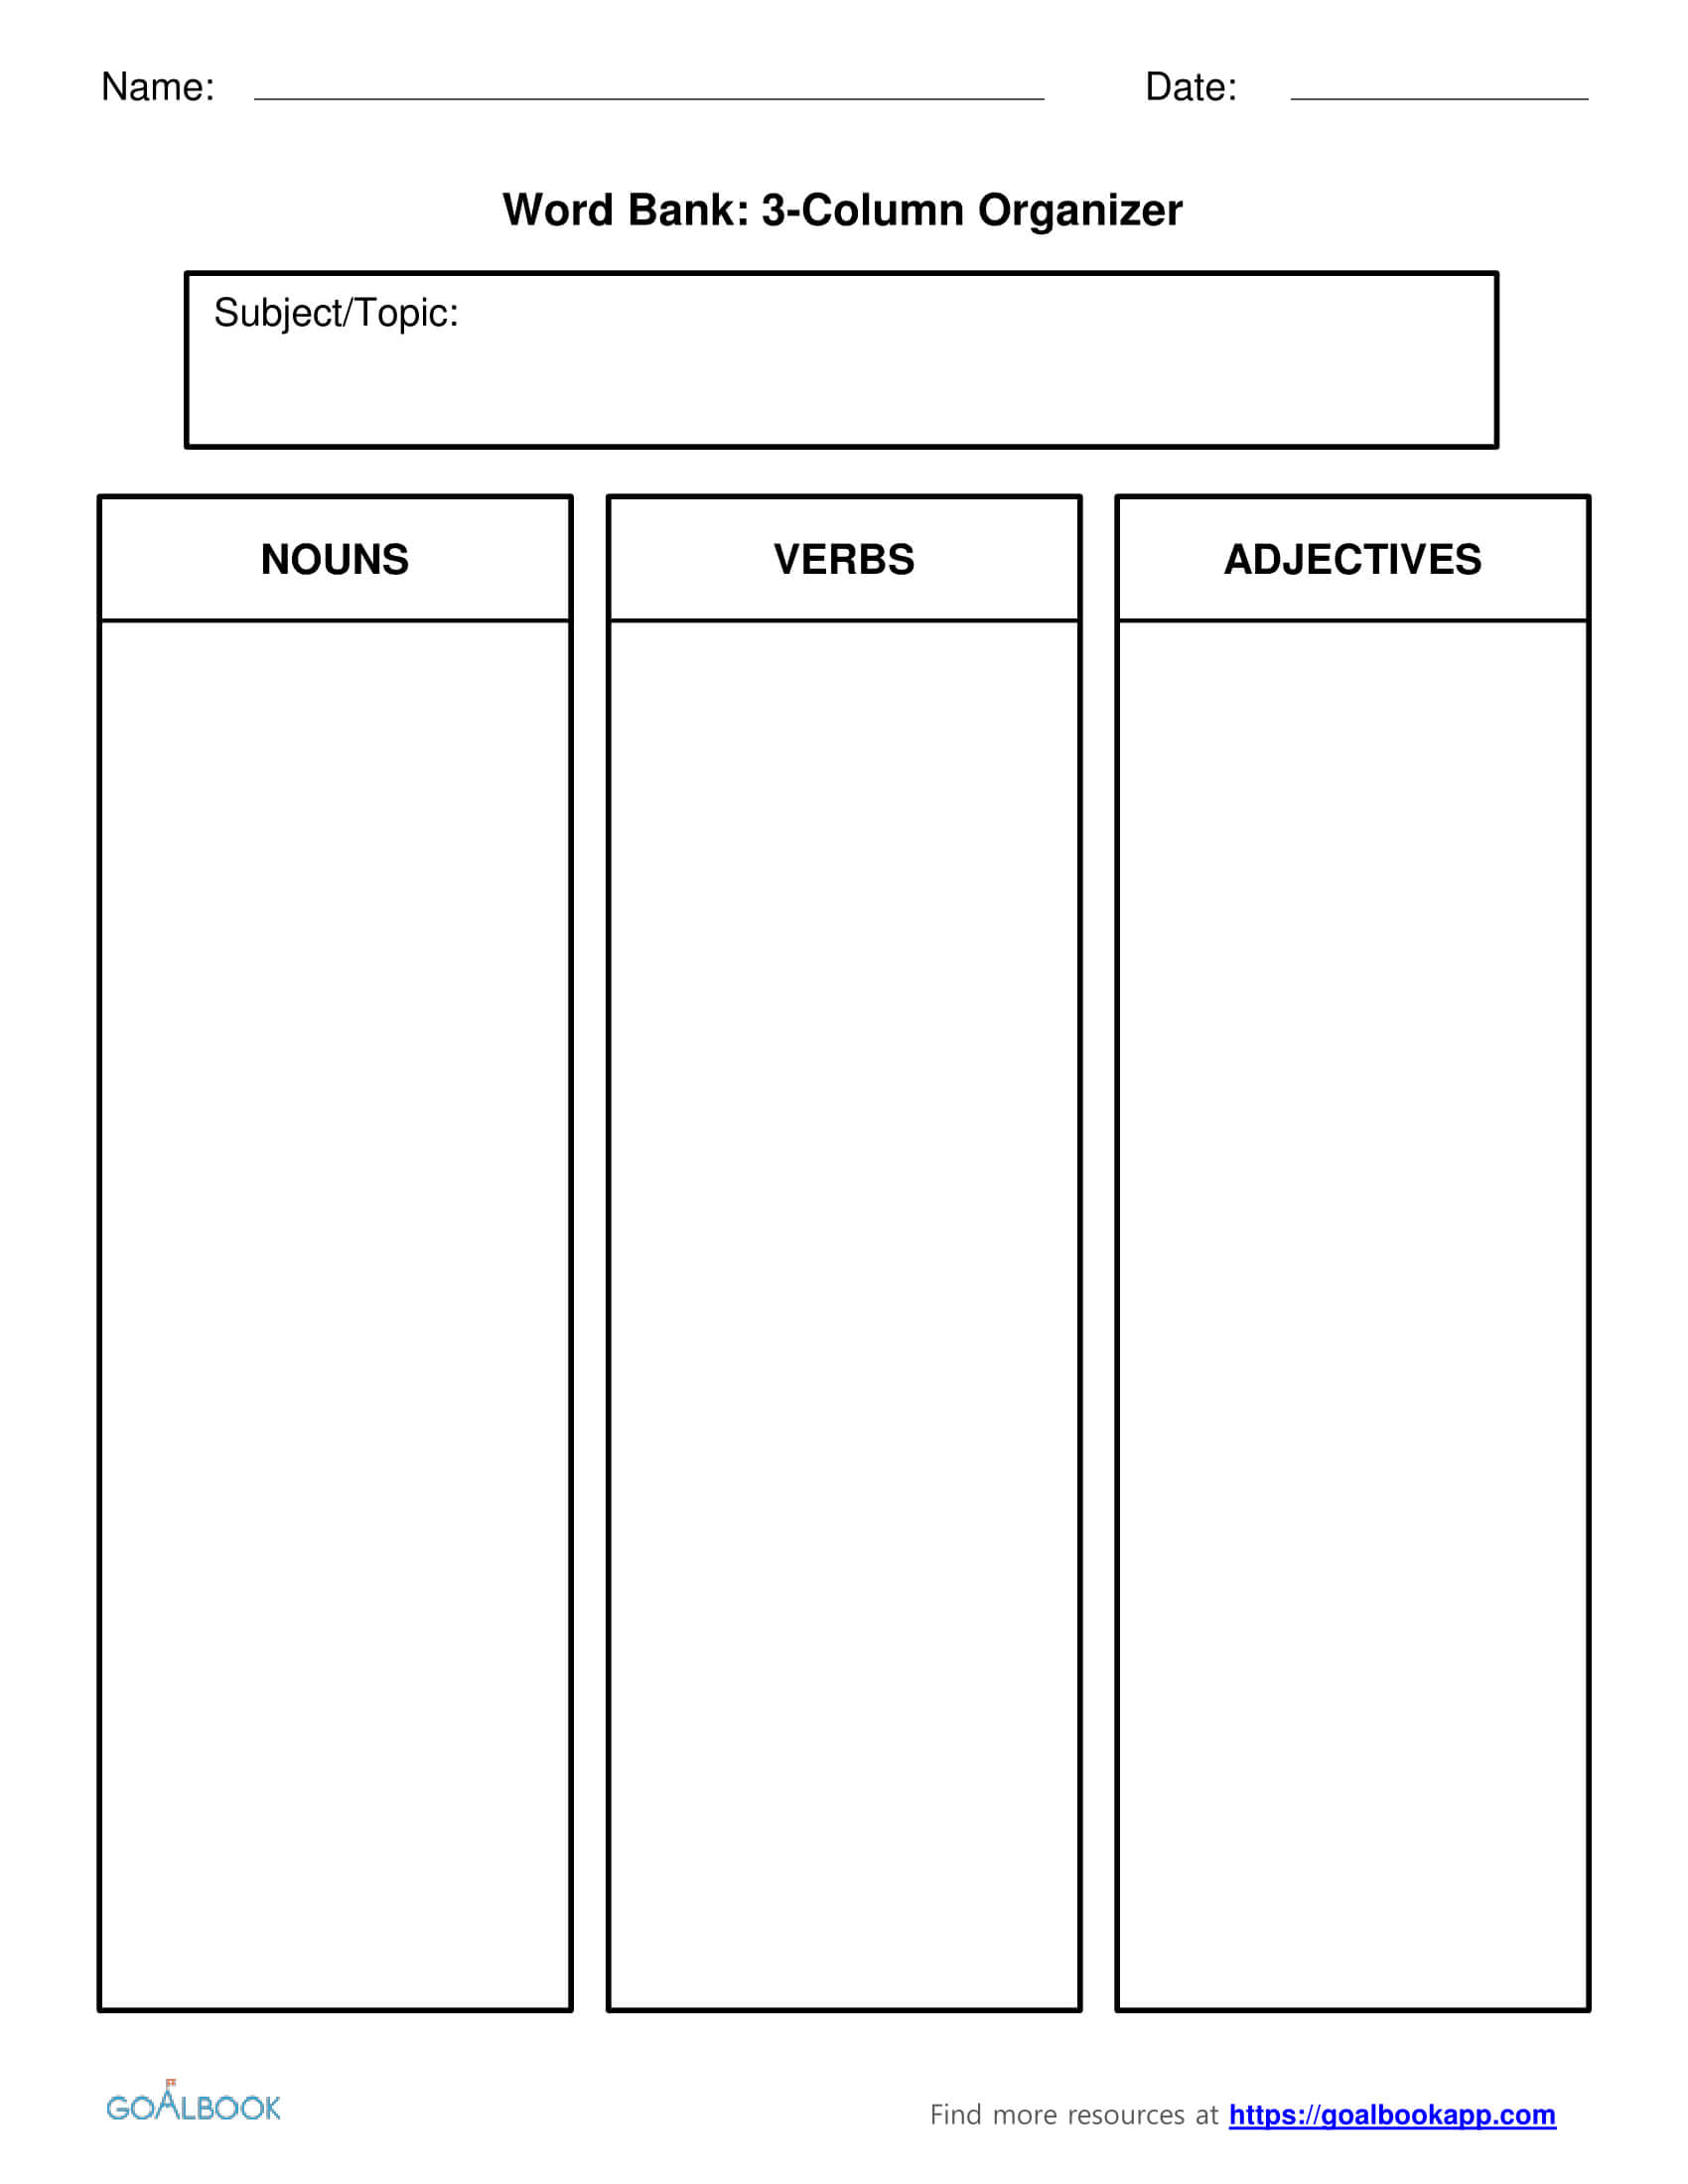 Word Bank | Udl Strategies - Goalbook Toolkit Inside 3 Column Word Template